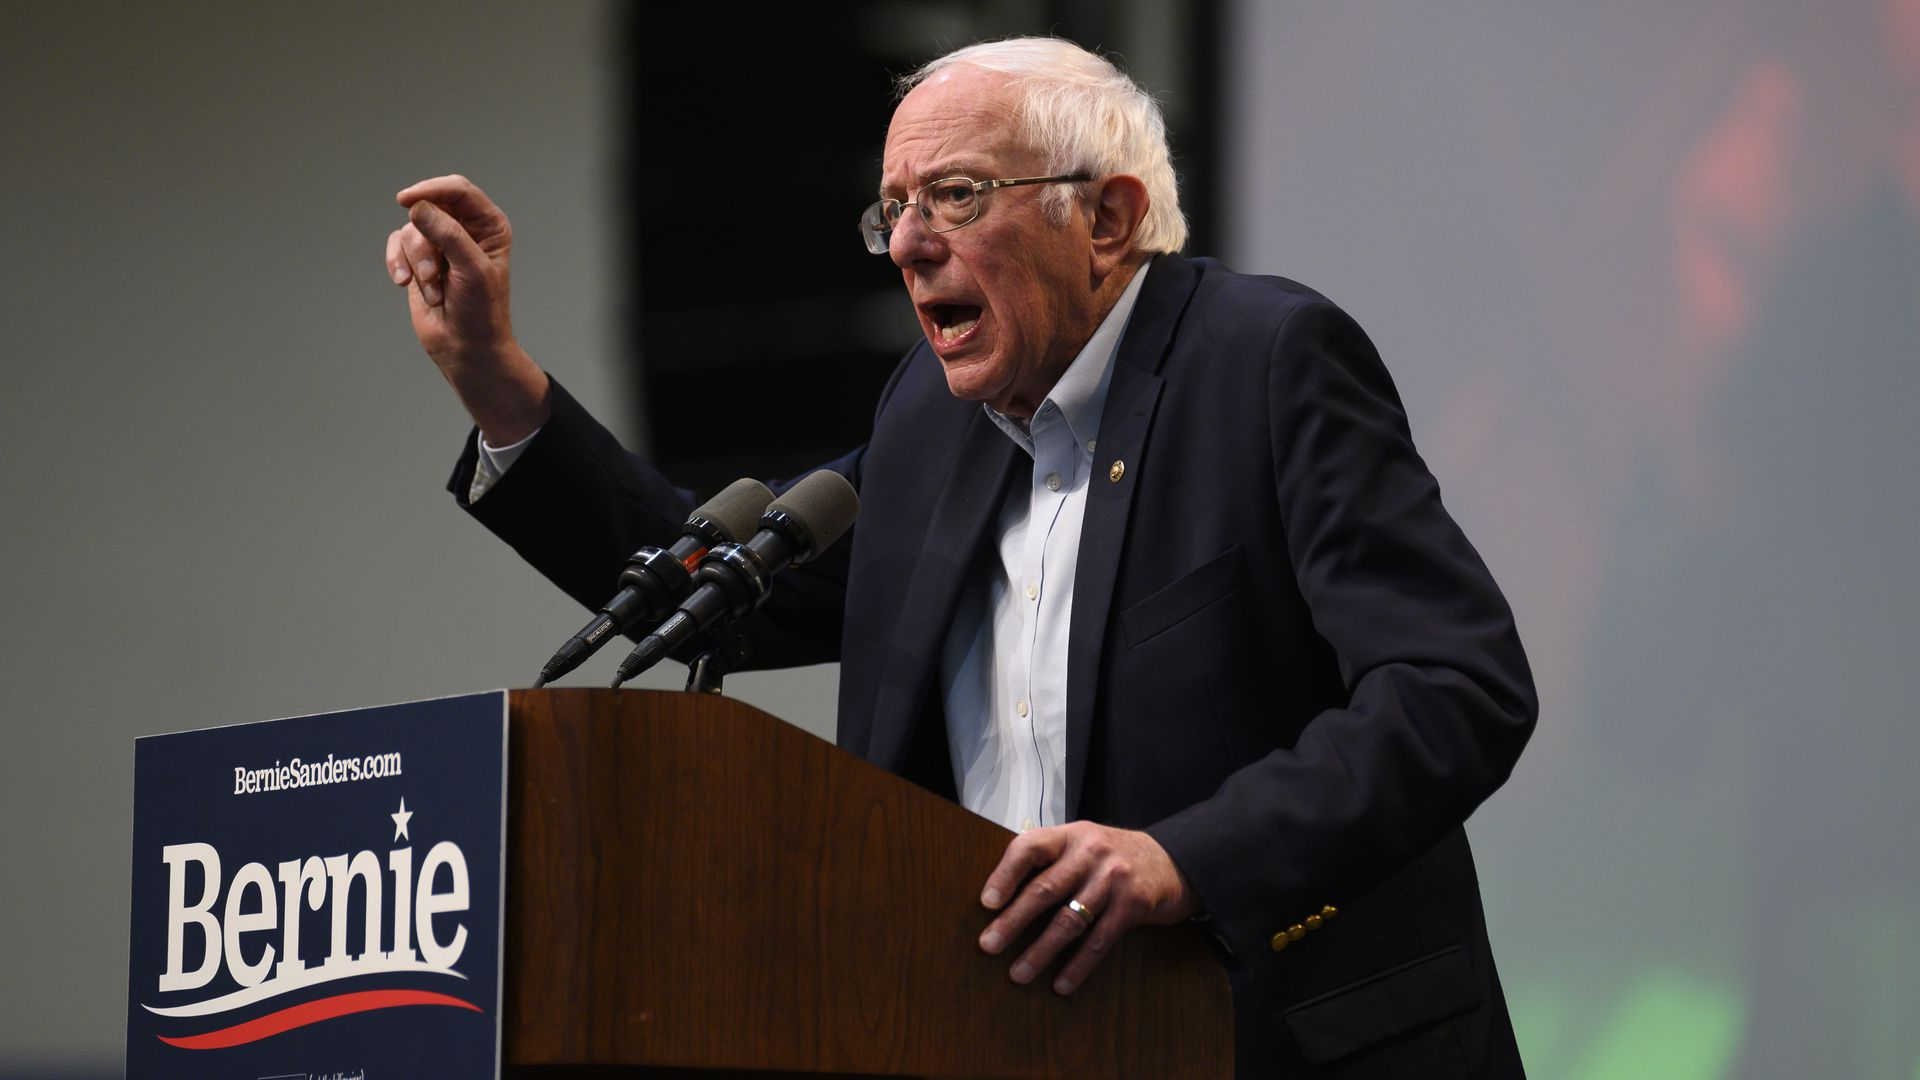 Democratic Presidential candidate Bernie Sanders (I-VT) speaks during the Climate Crisis Summit at Drake University on November 9